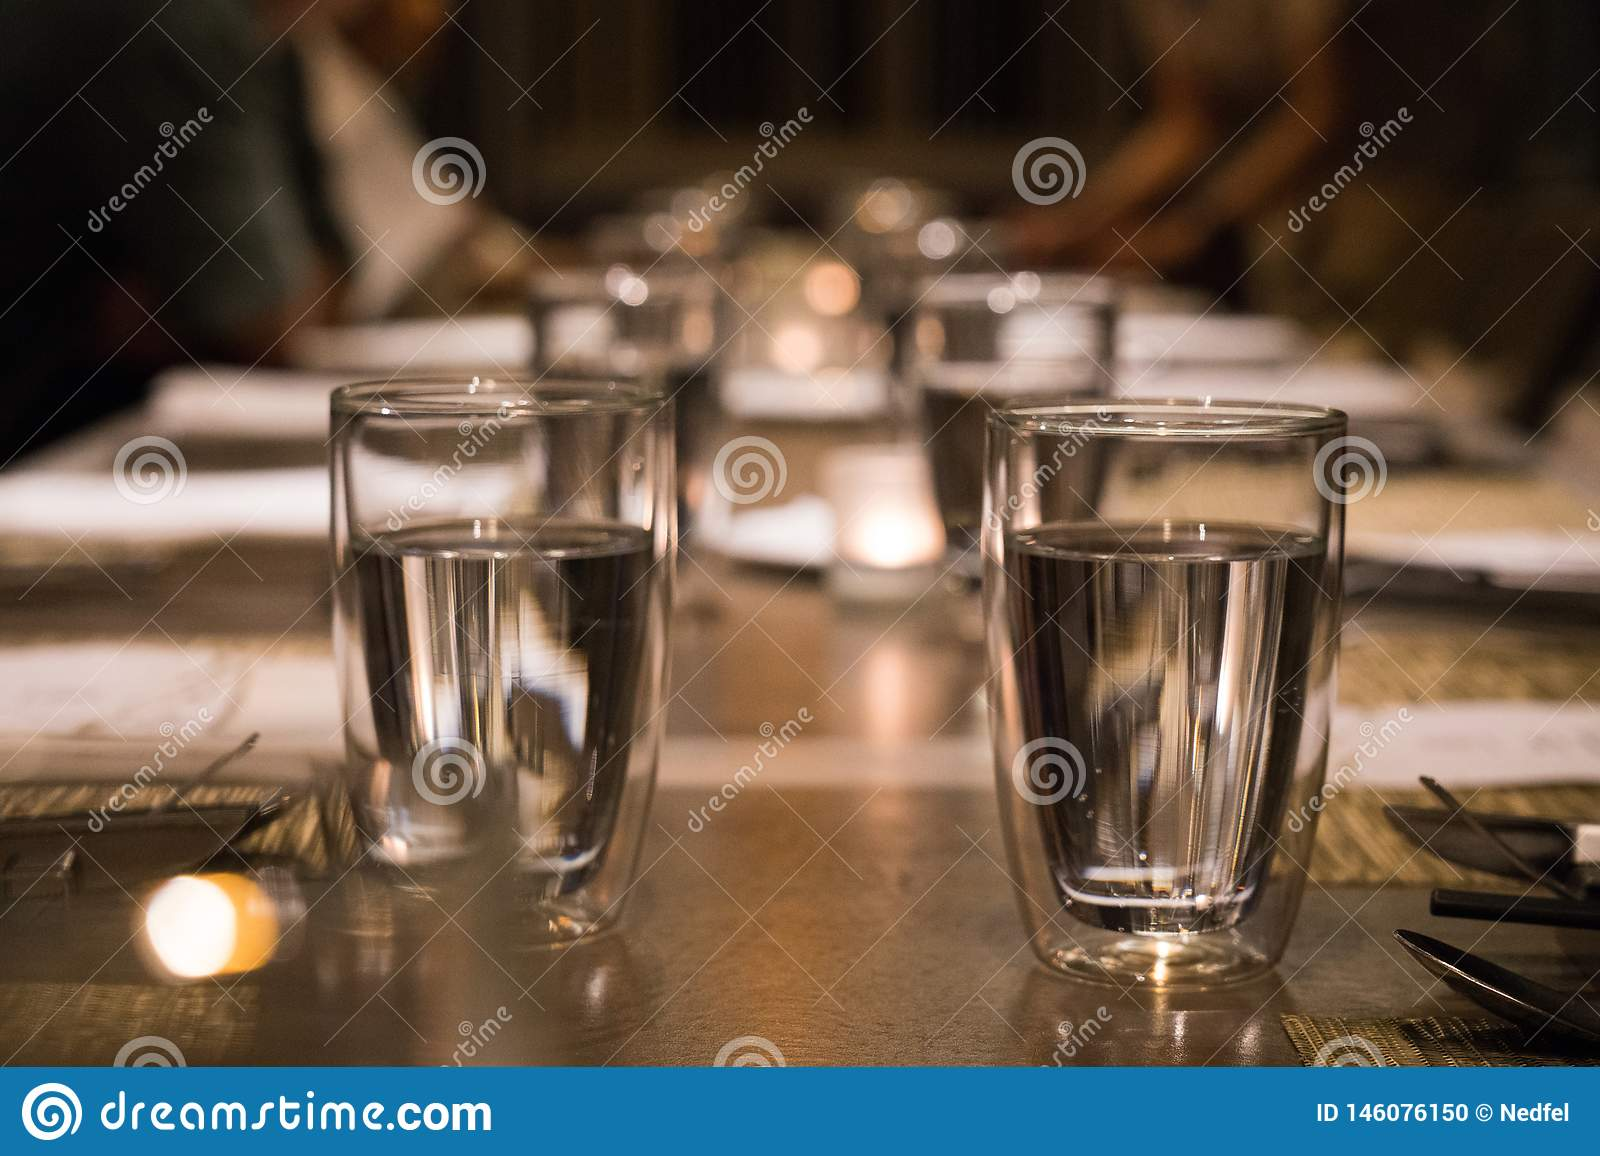 Drinking glass on the dining table